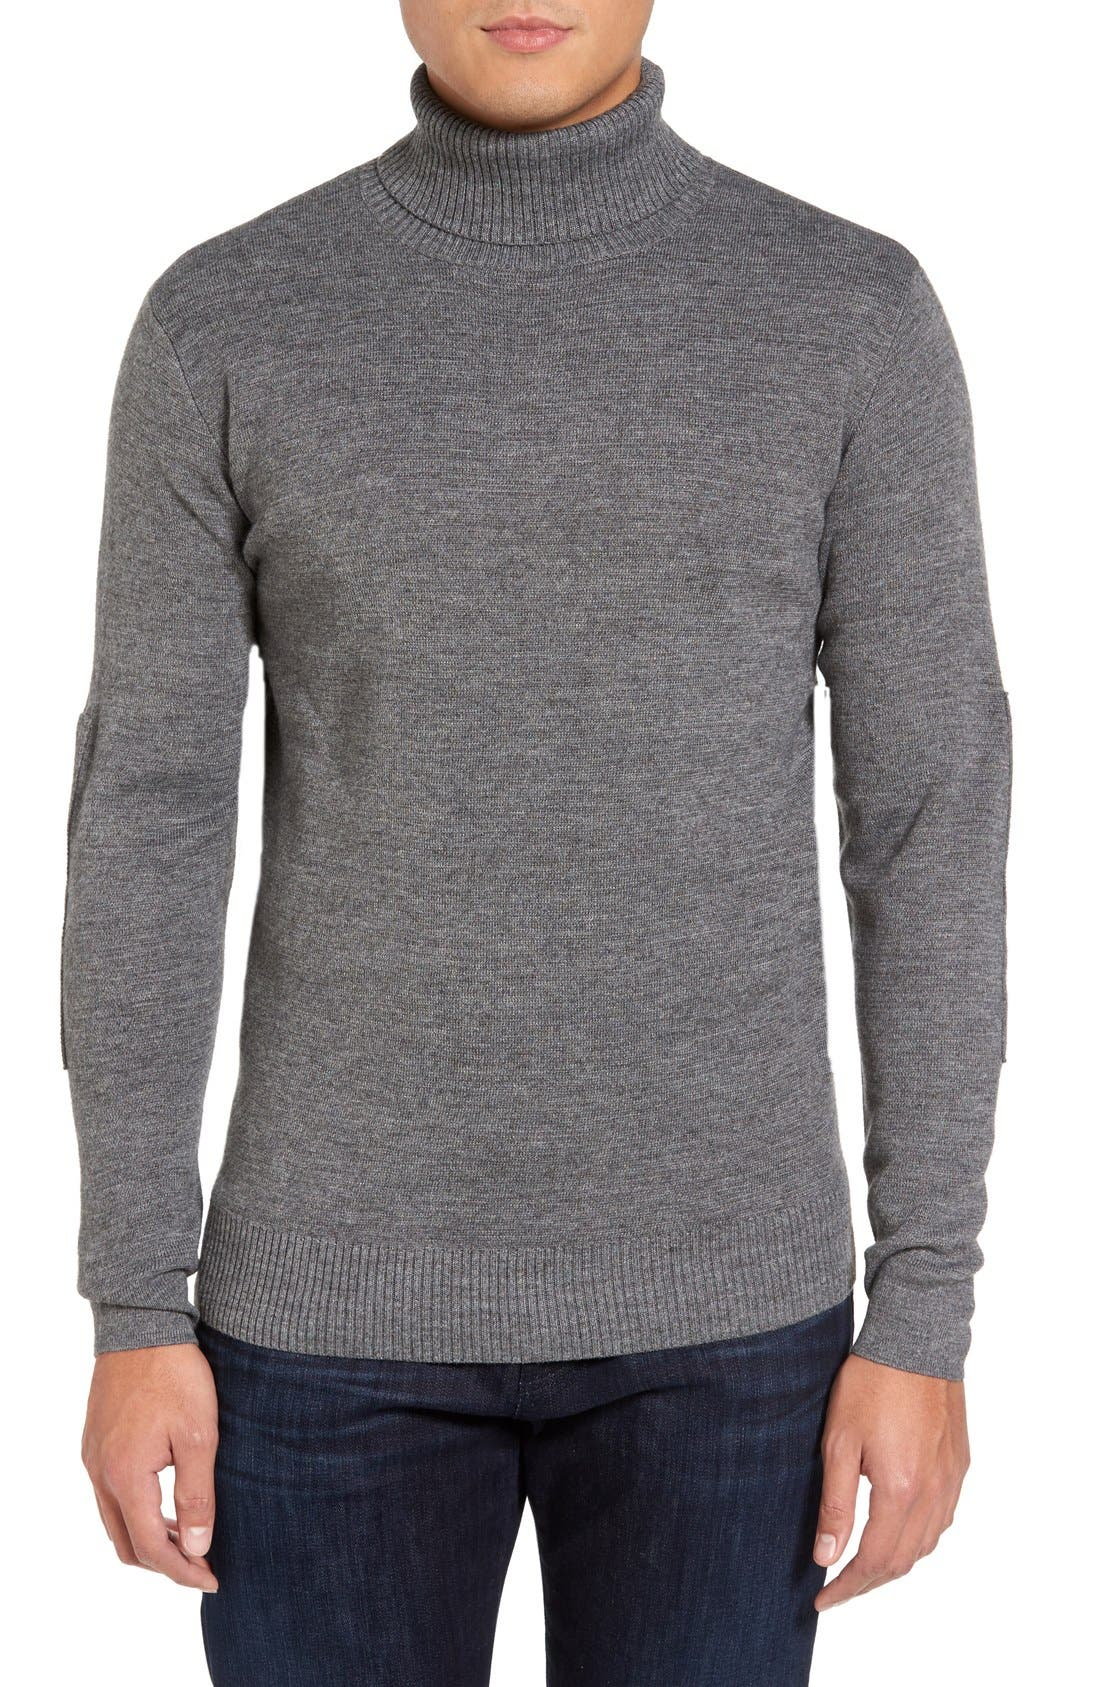 Men's Turtleneck Sweaters | Nordstrom